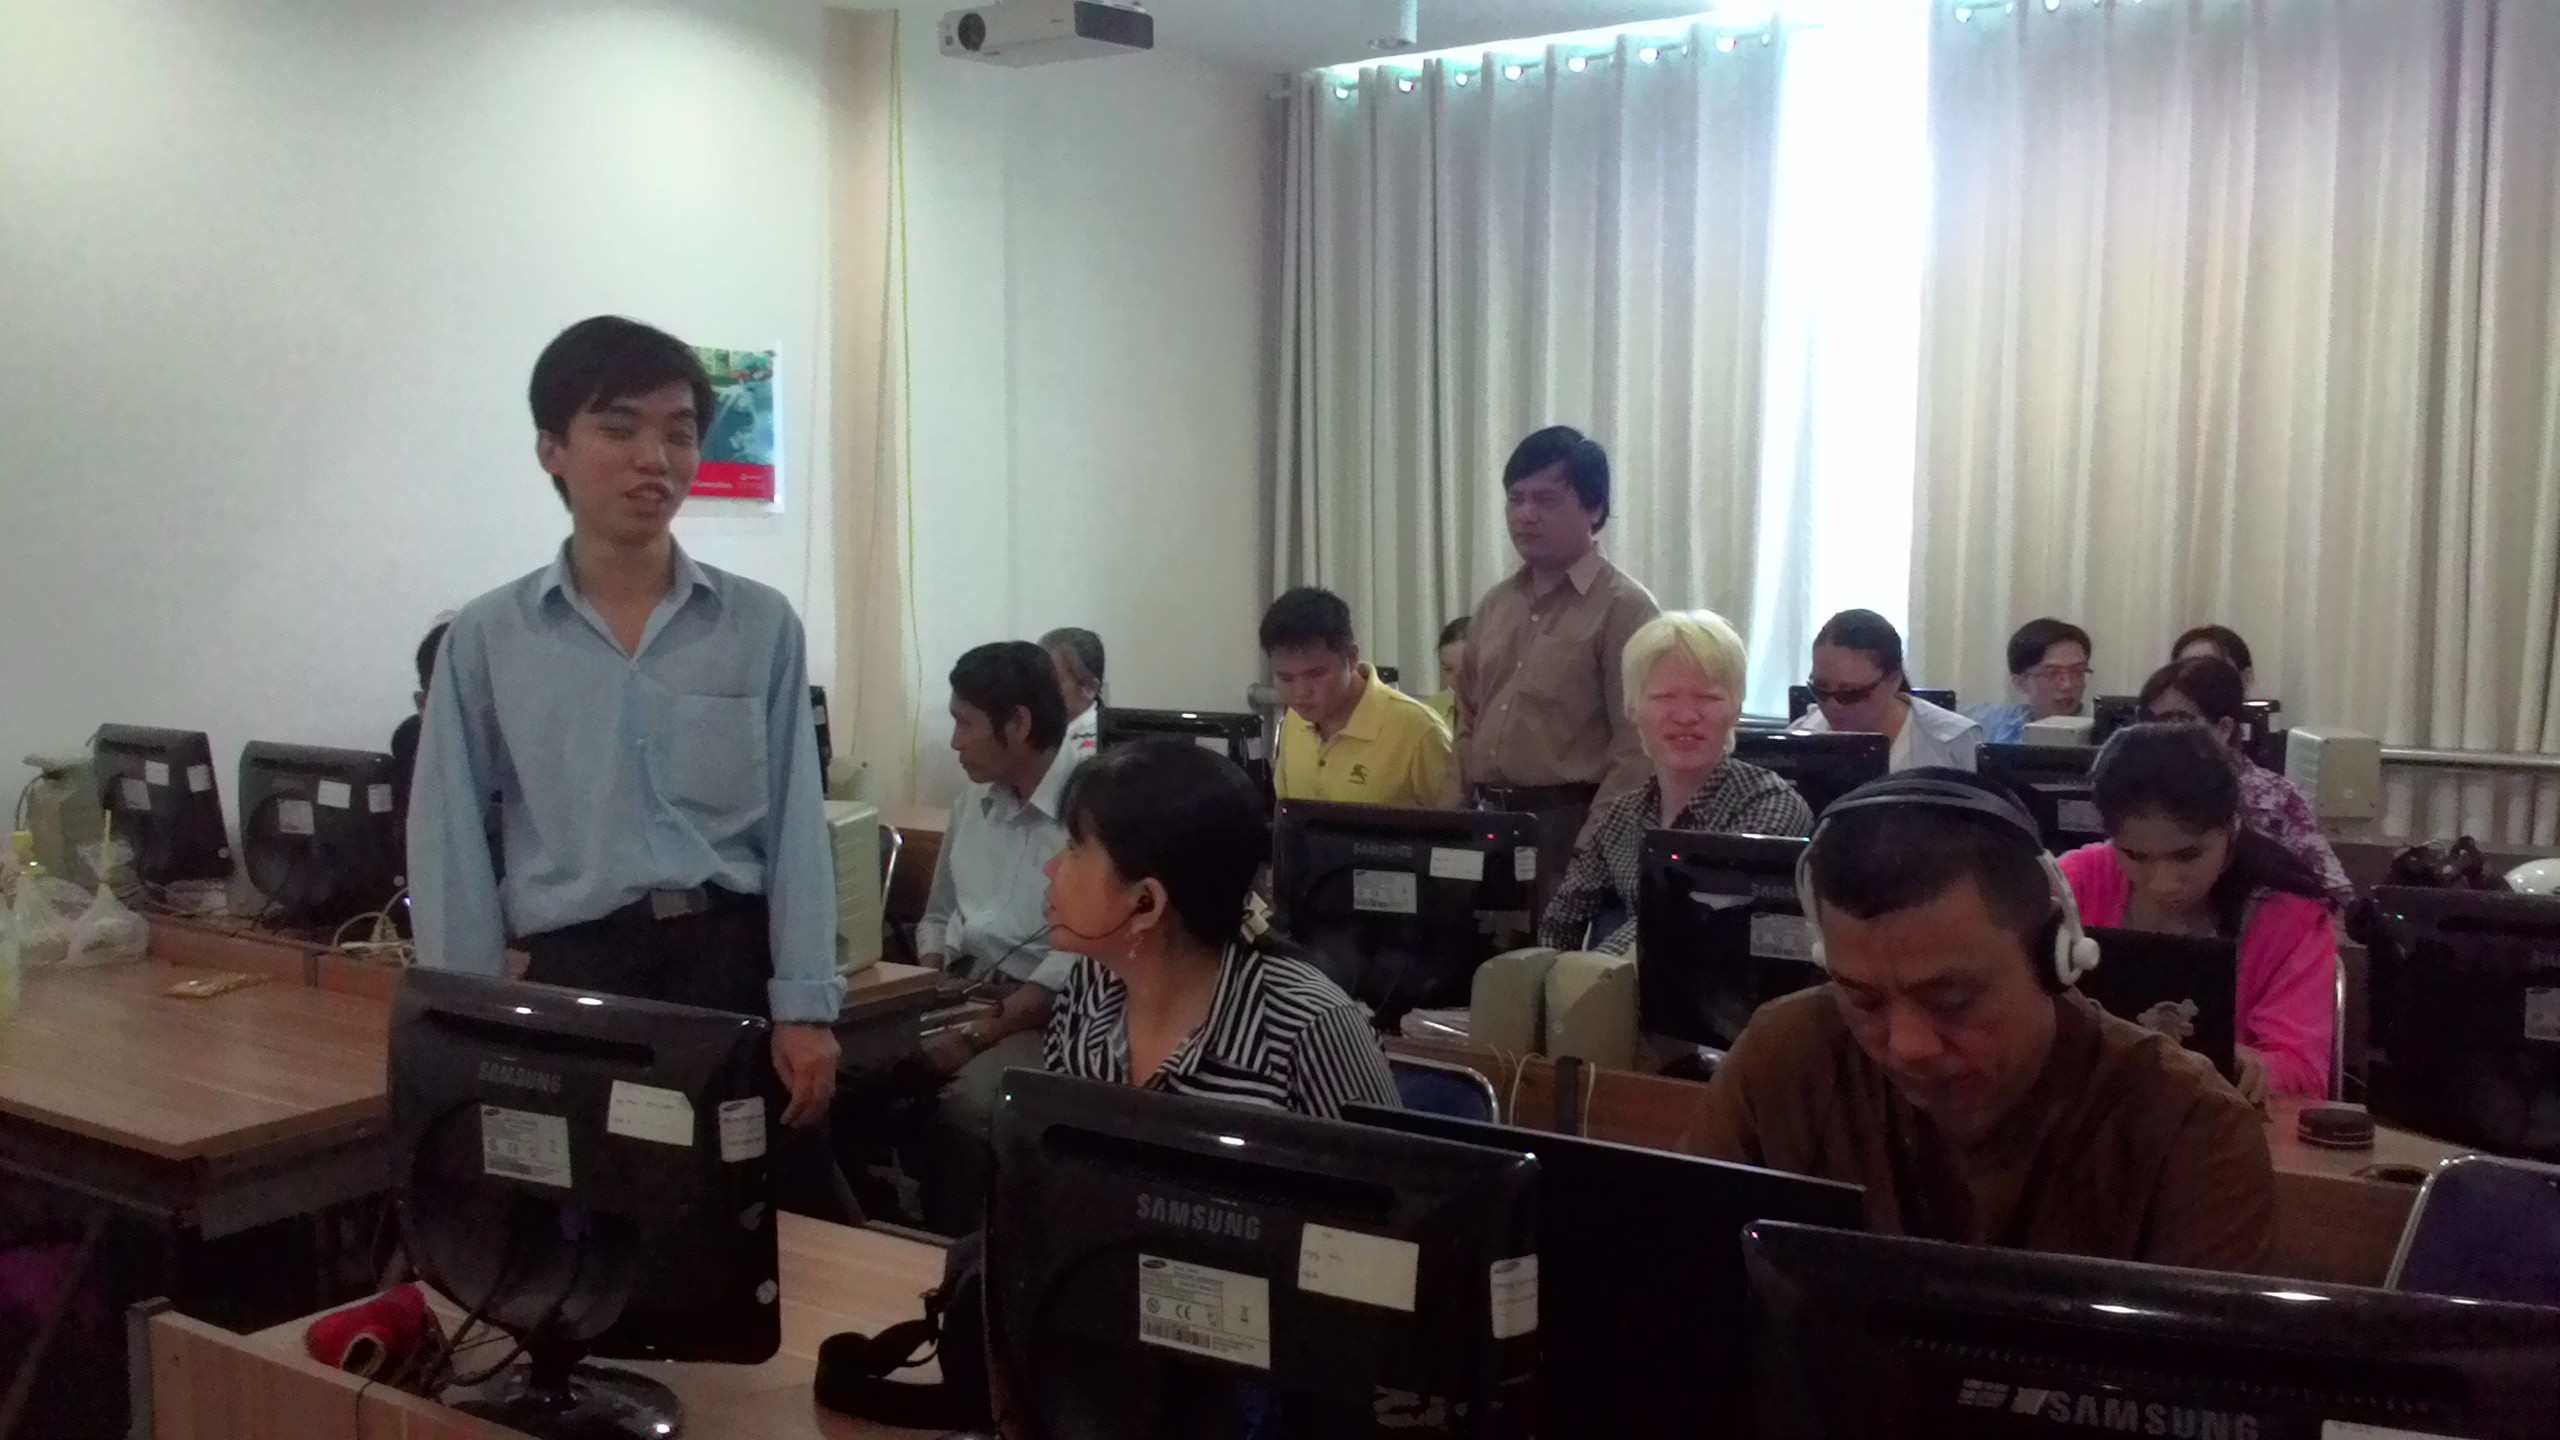 Cuong tutoring adults students